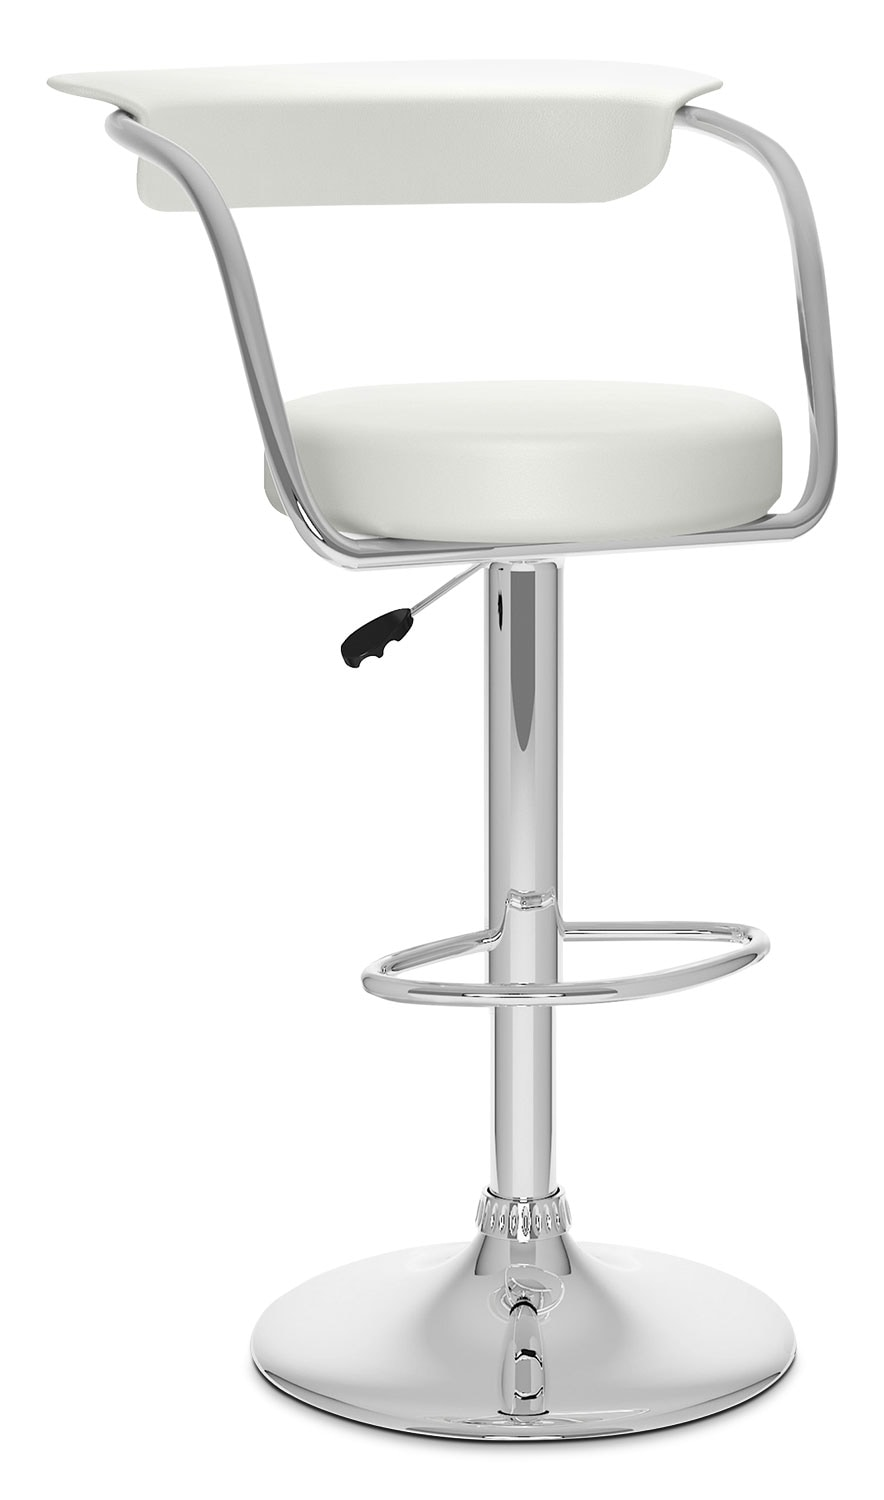 Corliving Open Back Adjustable Bar Stool White The Brick